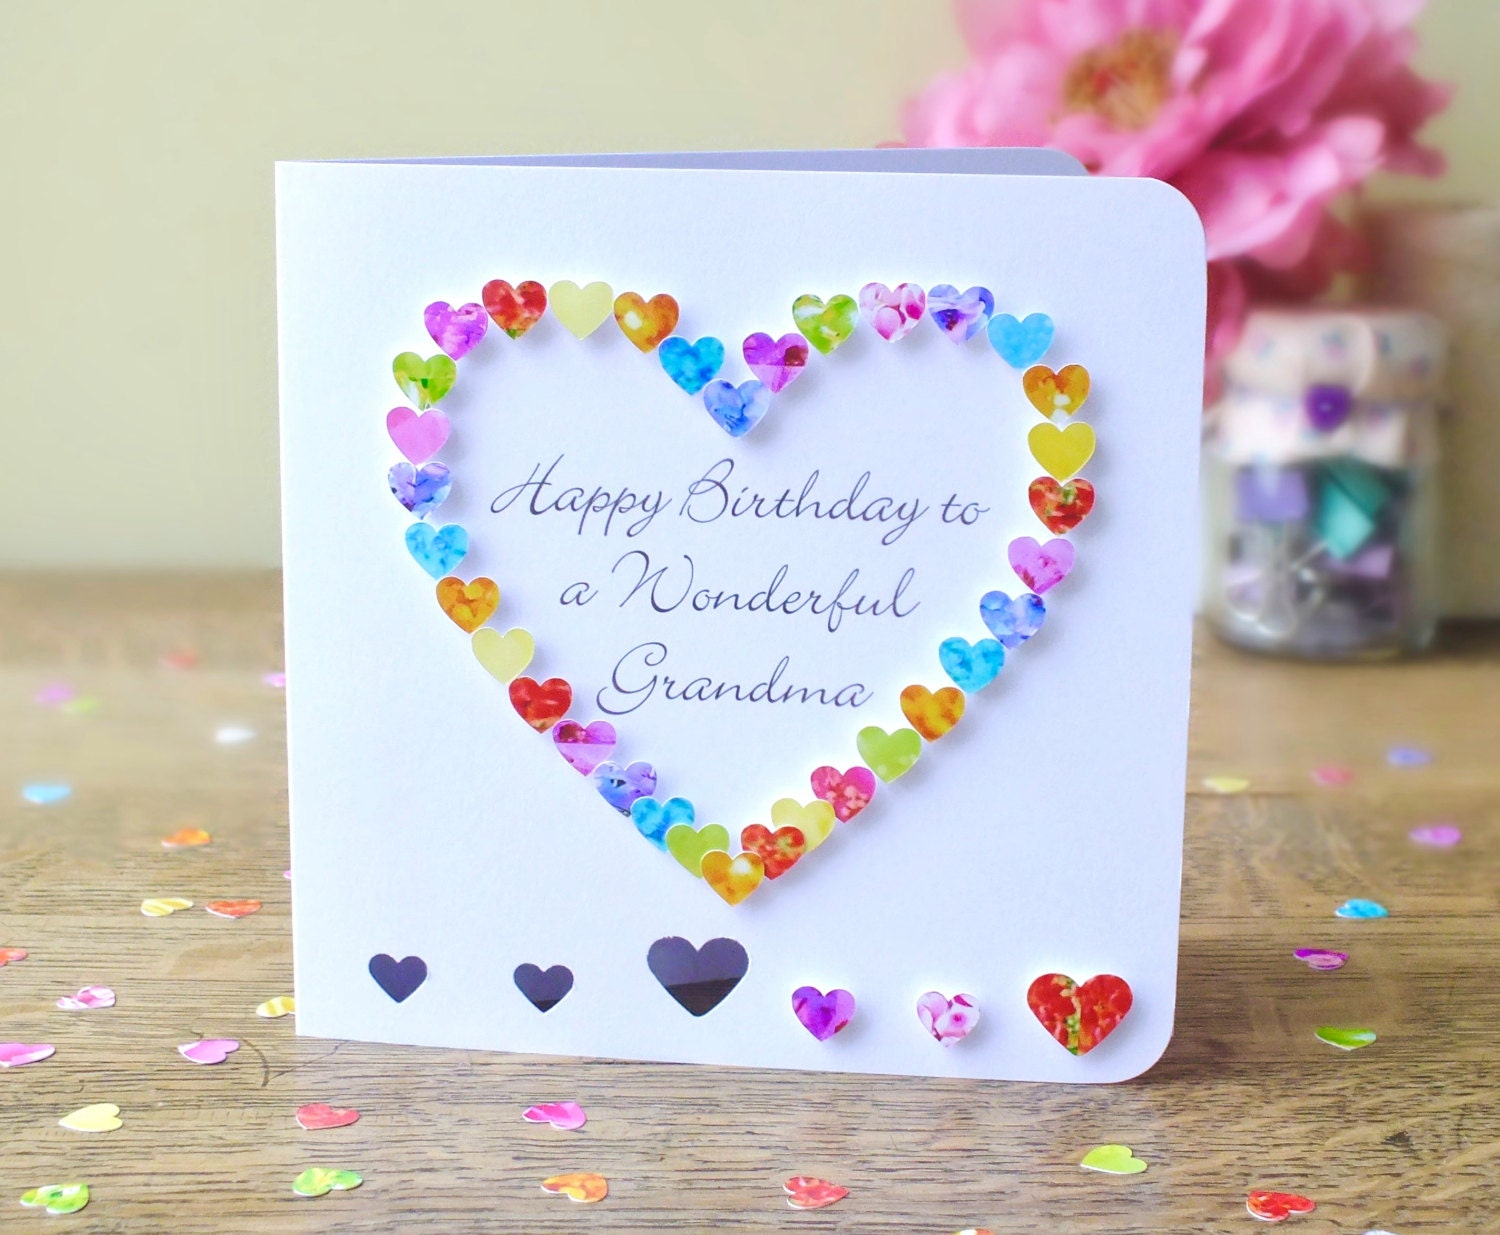 Grandma birthday card handmade personalised birthday card zoom bookmarktalkfo